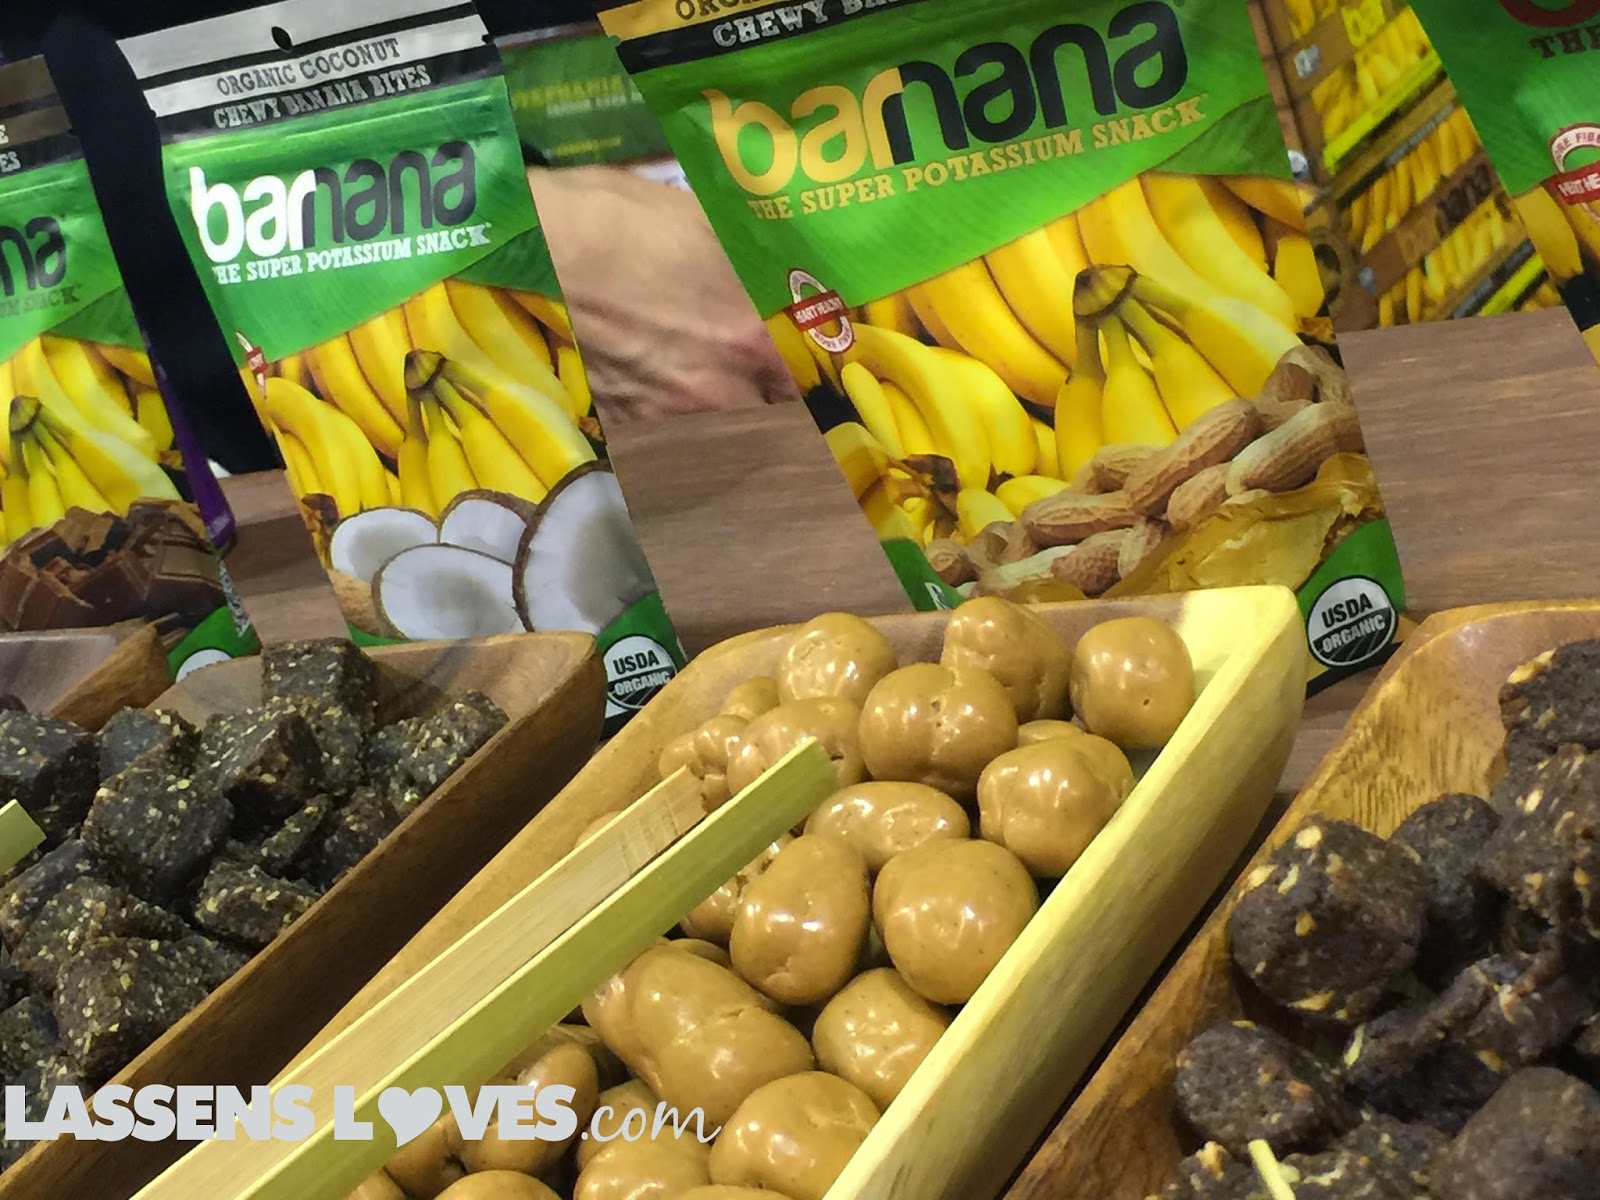 Expo+West+2015, Natural+Foods+Show, New+Natural+Products, barnana+snacks, banana+snacks